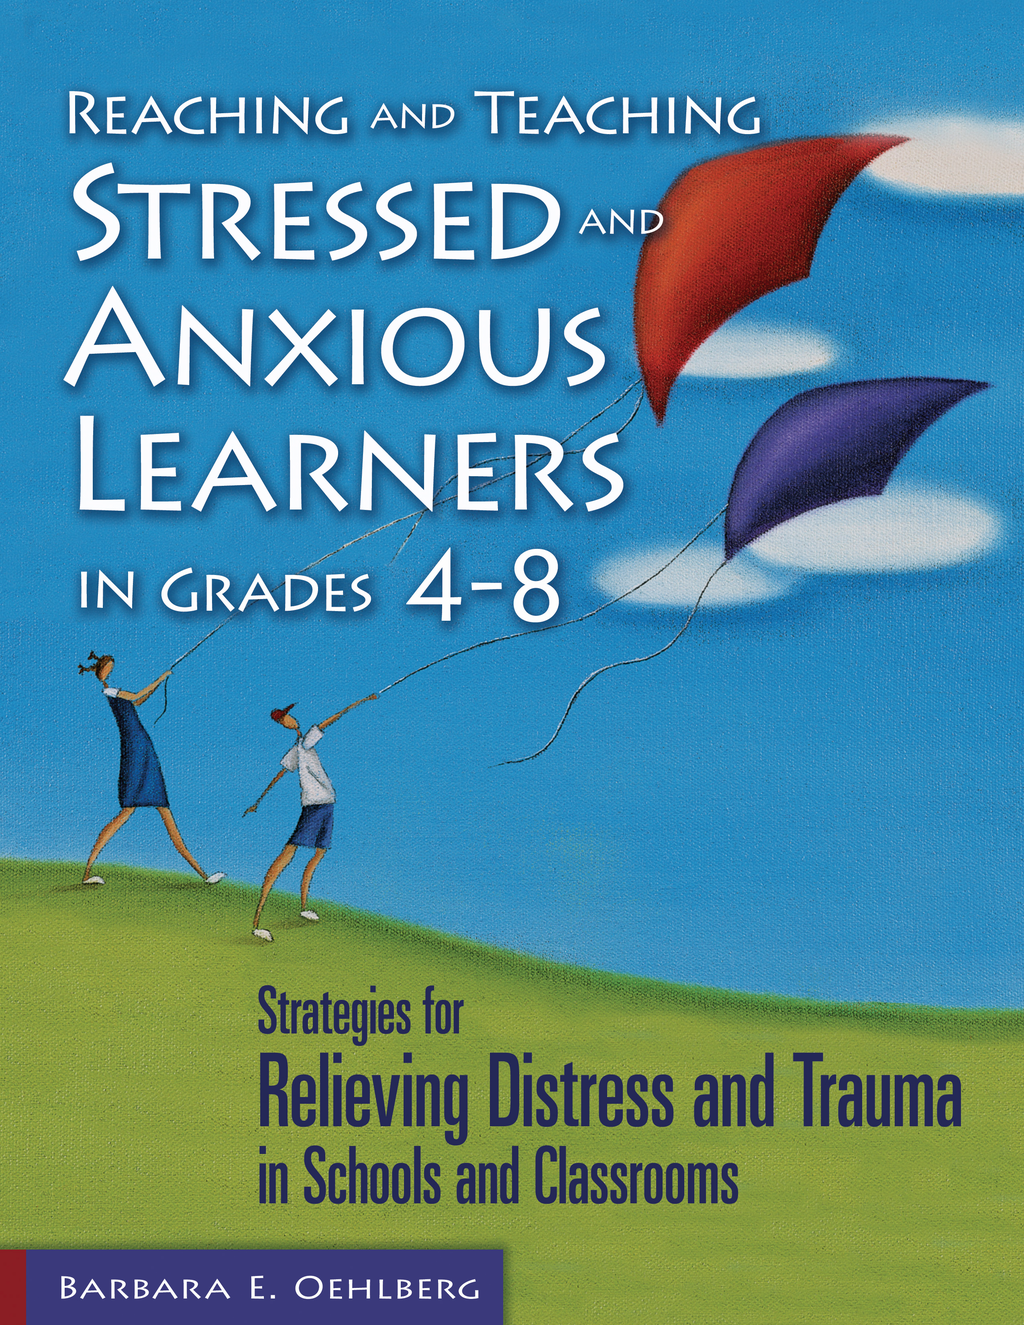 Reaching and Teaching Stressed and Anxious Learners in Grades 4-8 Strategies for Relieving Distress and Trauma in Schools and Classrooms